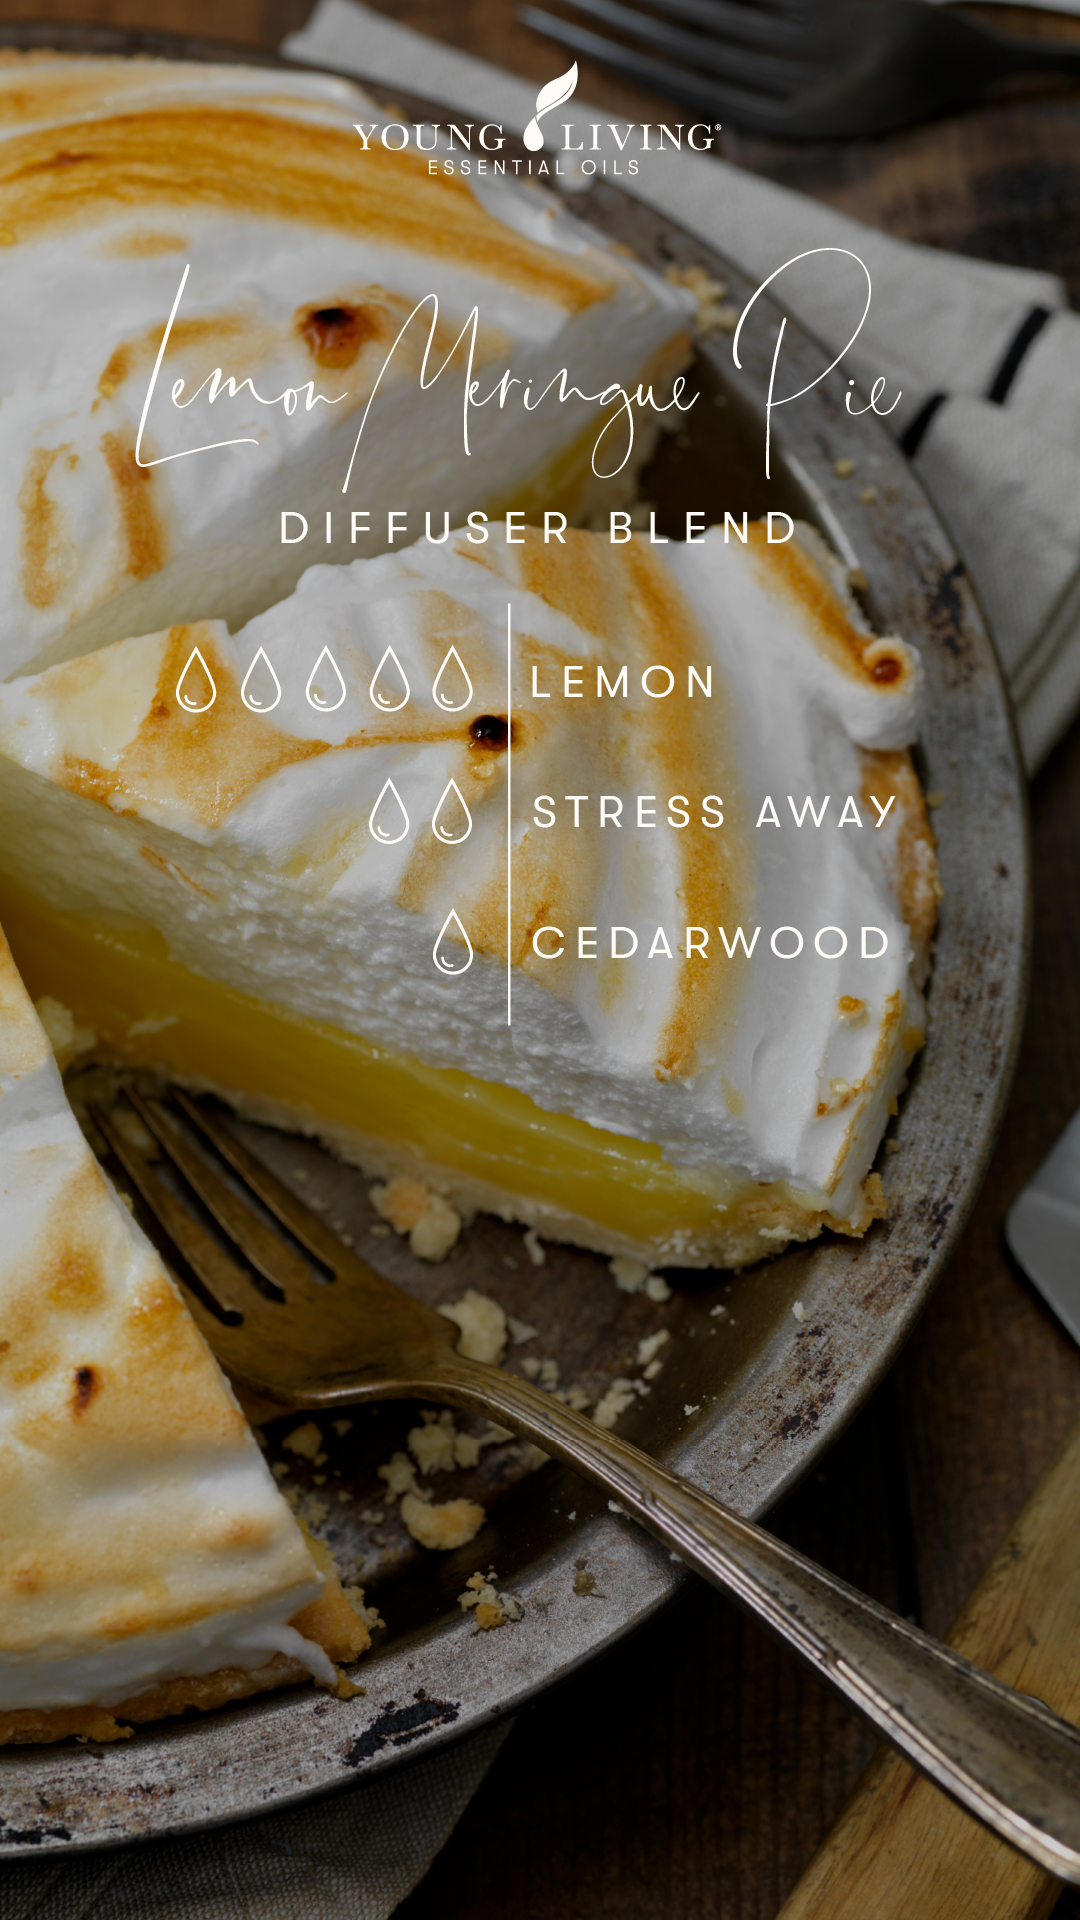 5 drops Lemon 2 drops Stress Away 1 drop Cedarwood